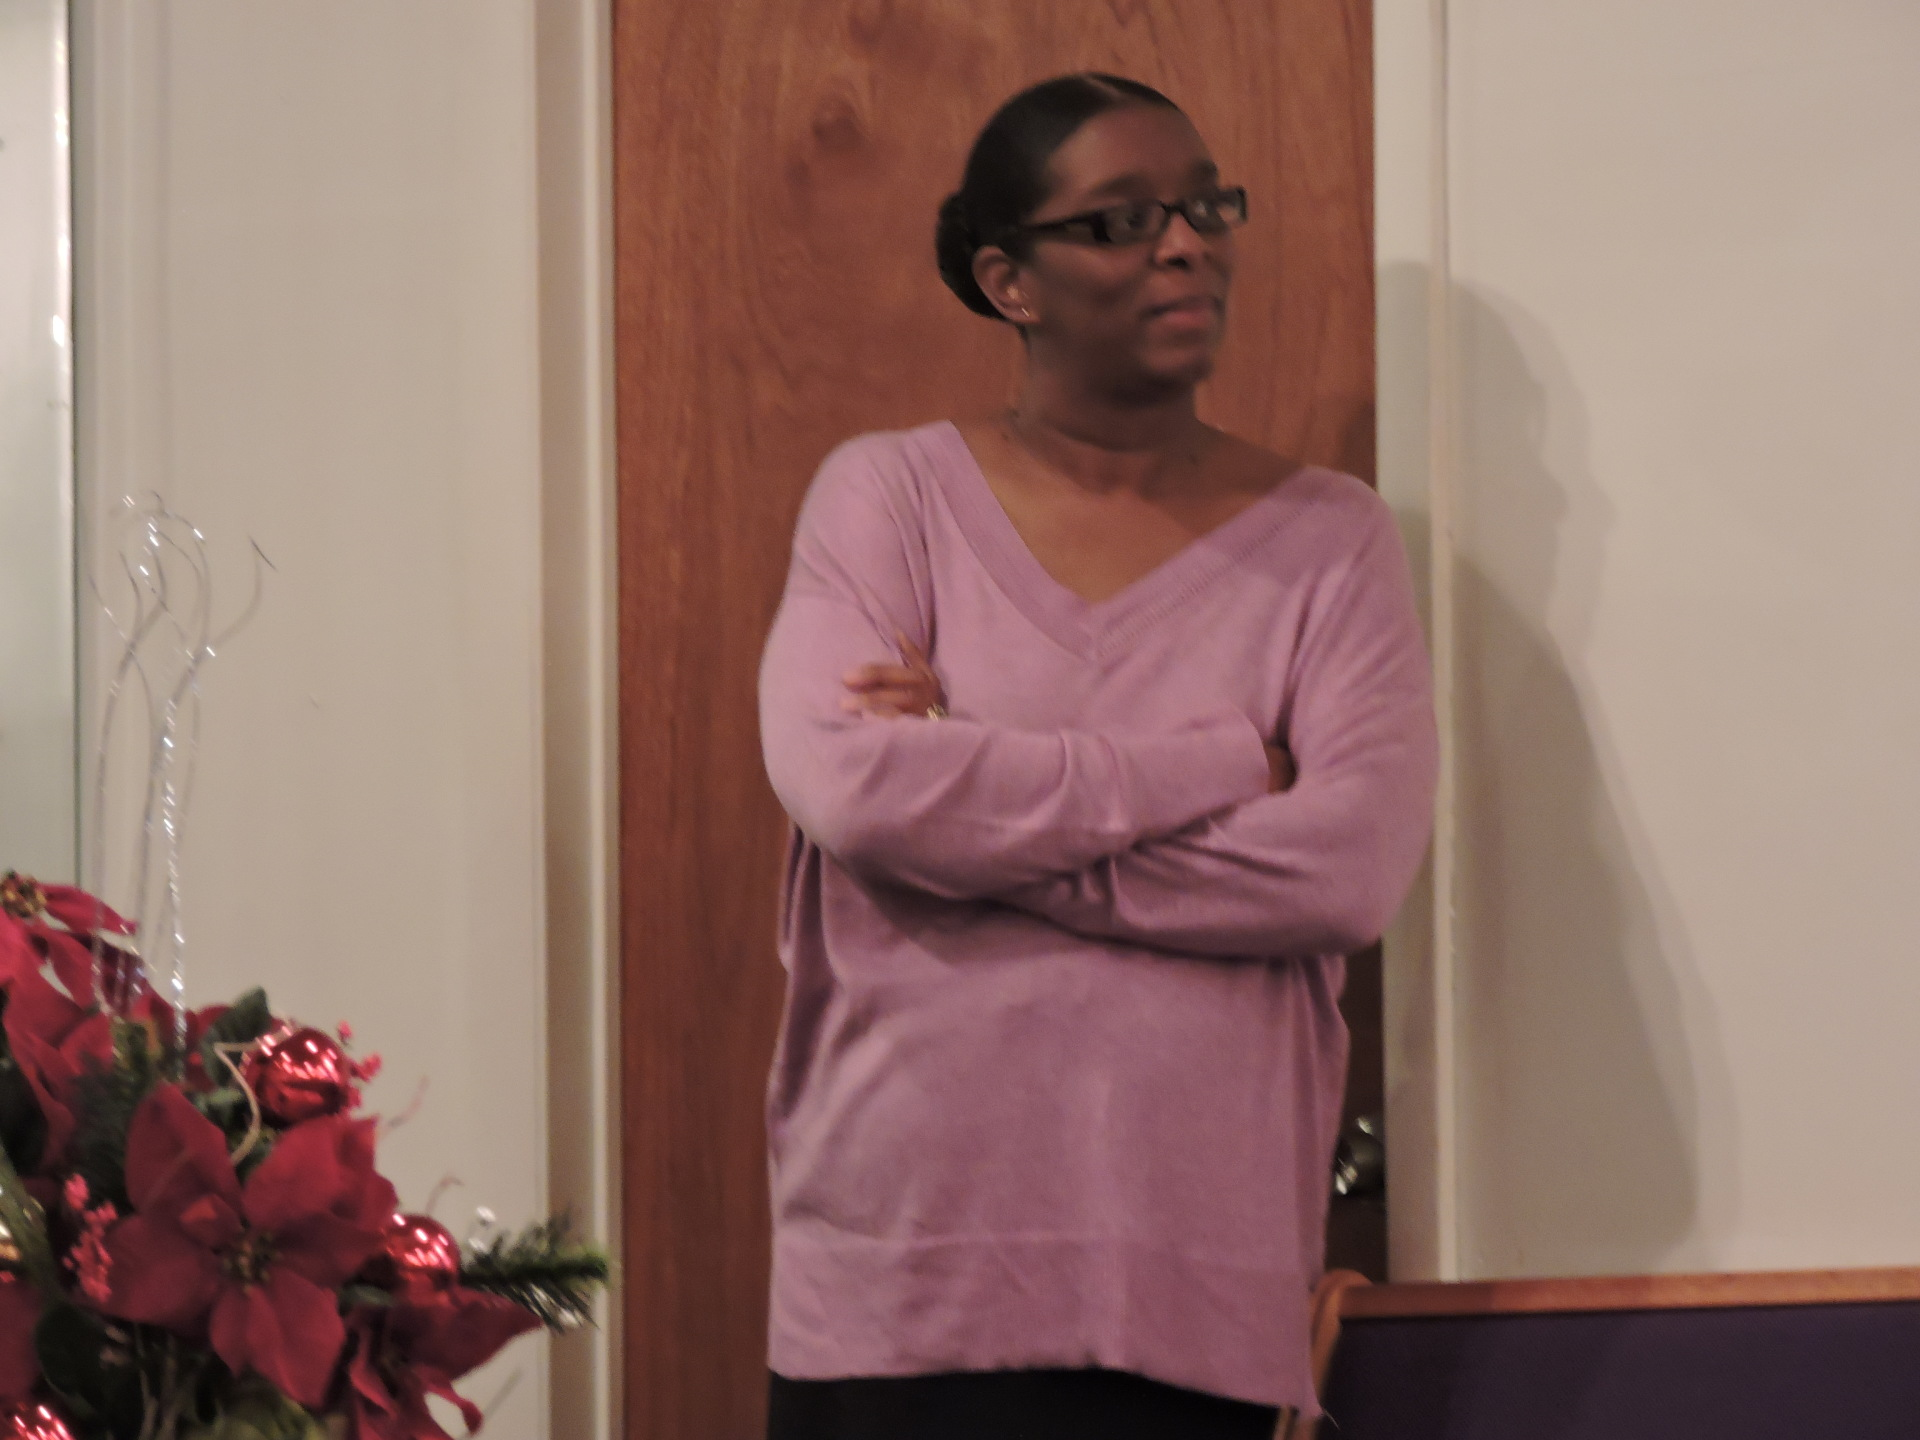 Minister Tekia Boatwright Tuned In To The Word